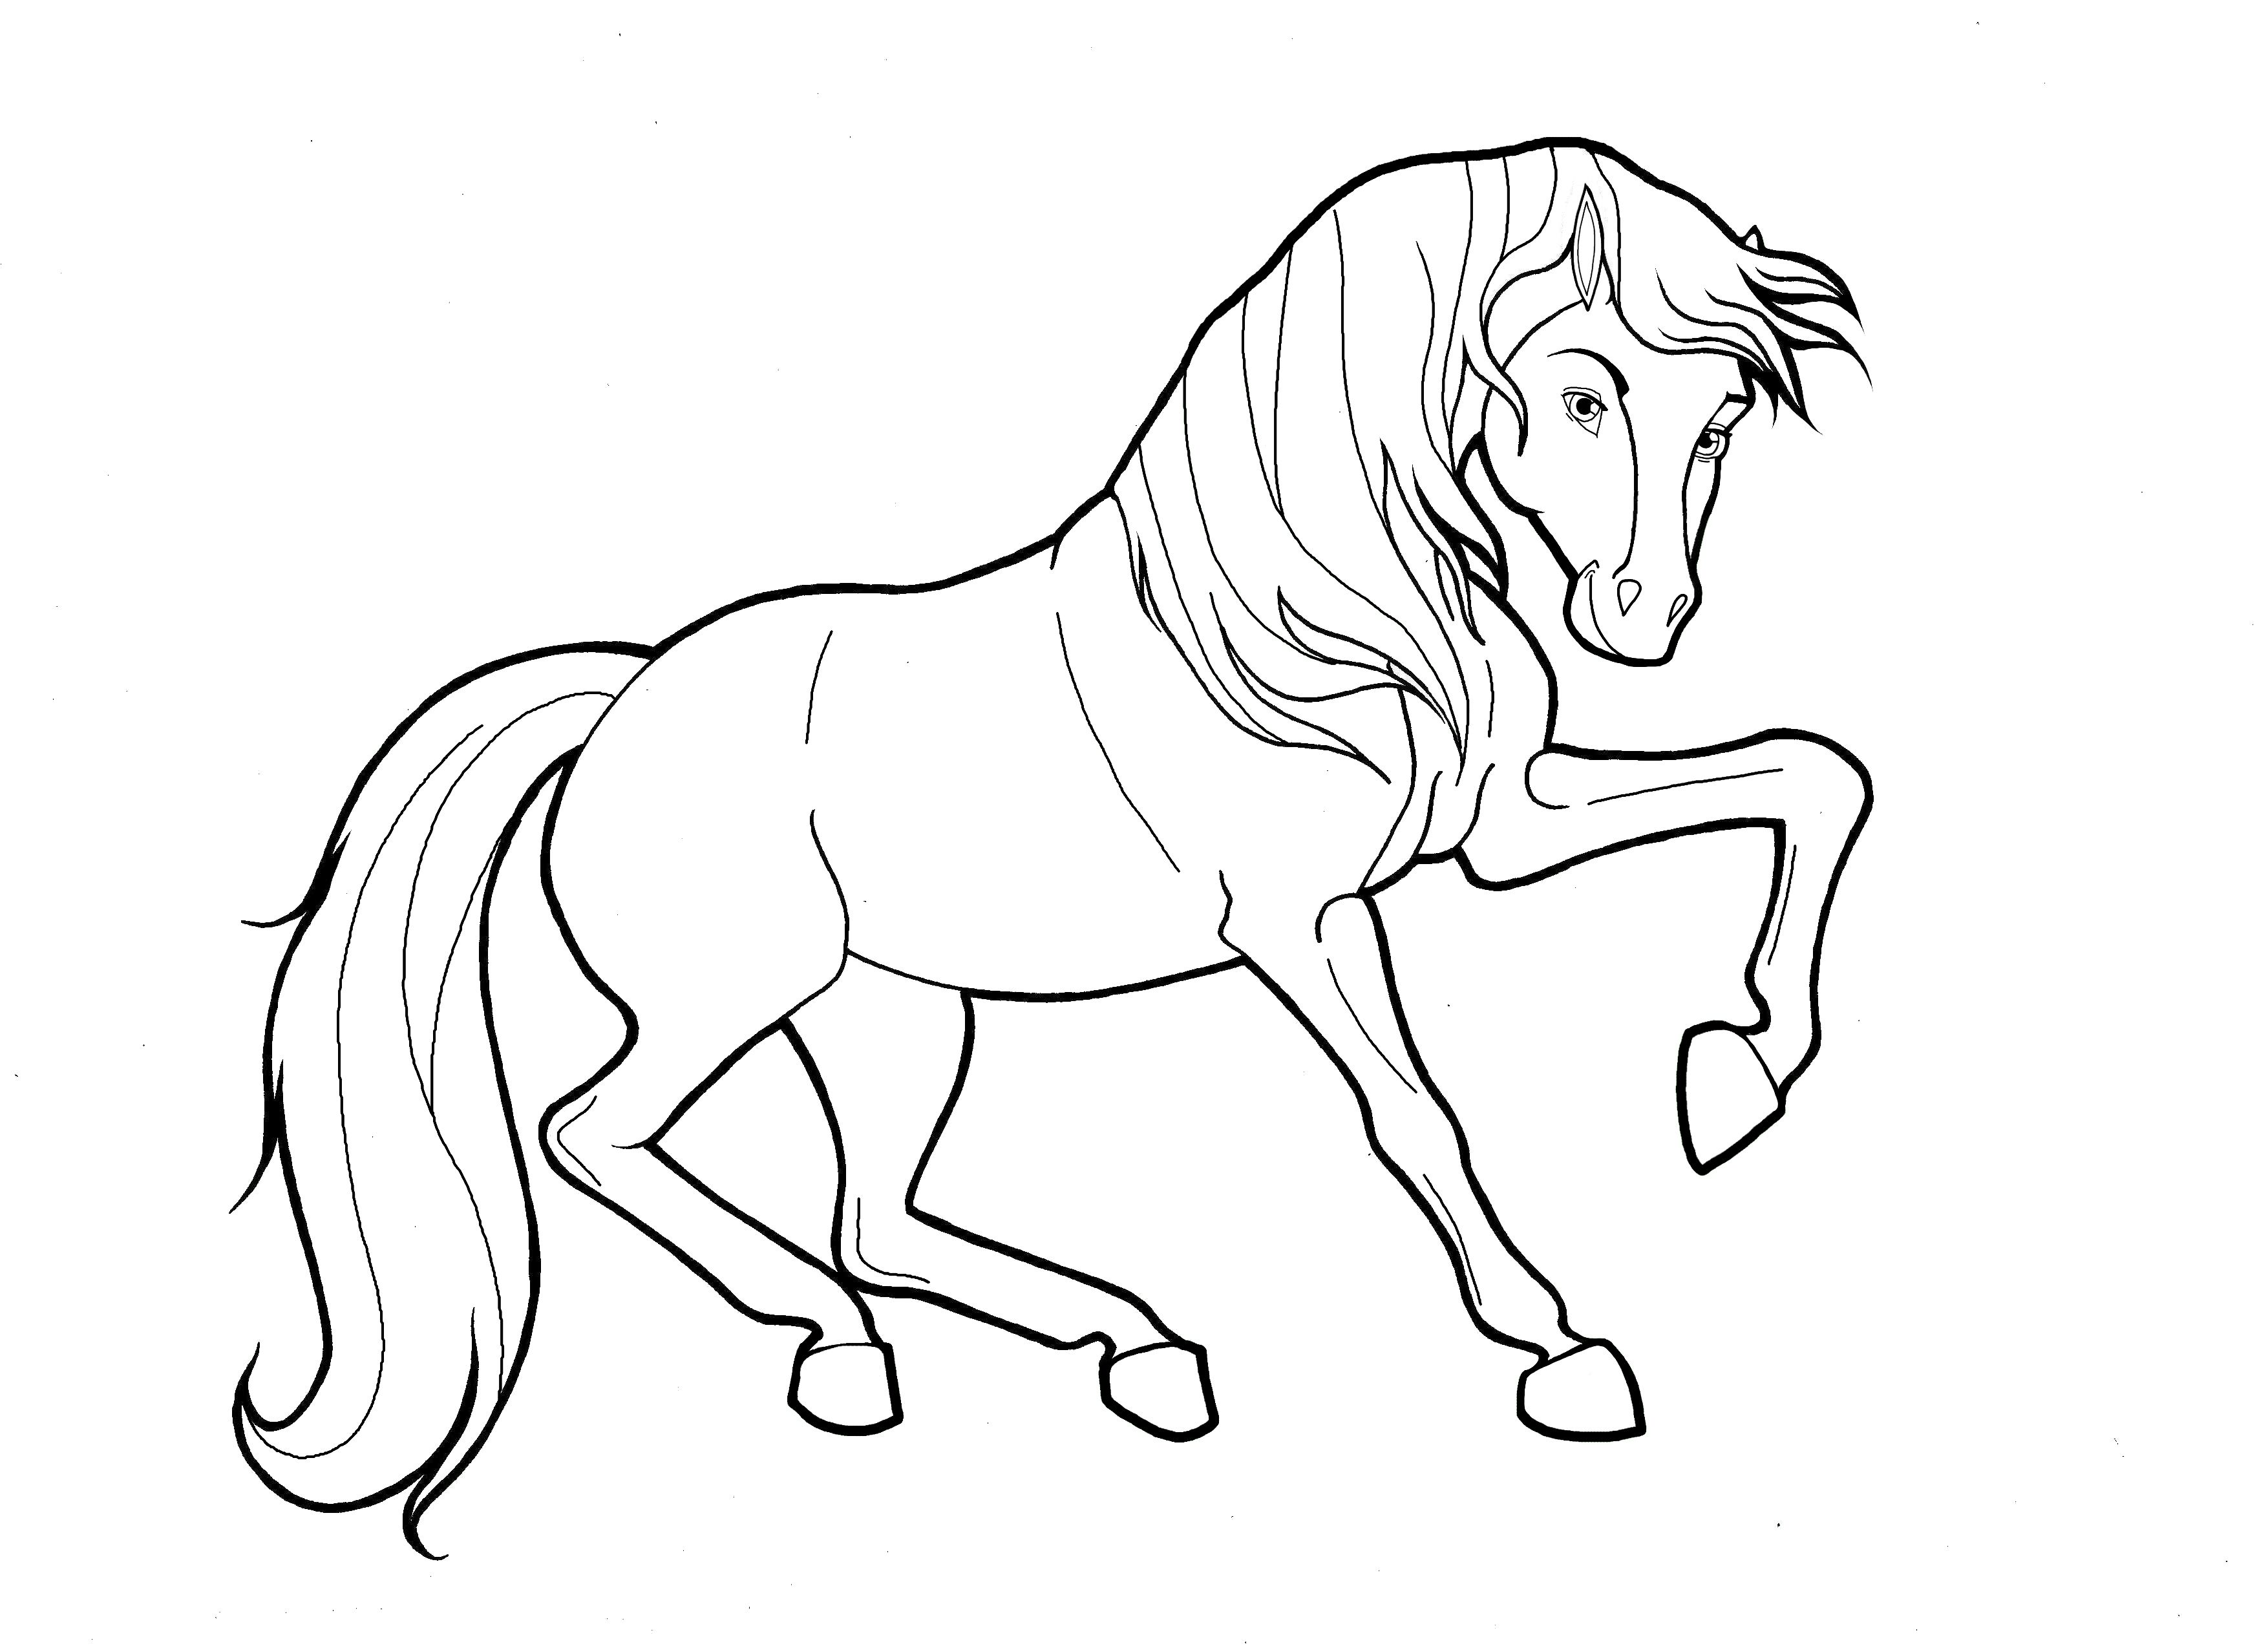 horse coloring pages online baby coloring horse pages 2020 horse coloring pages online horse pages coloring